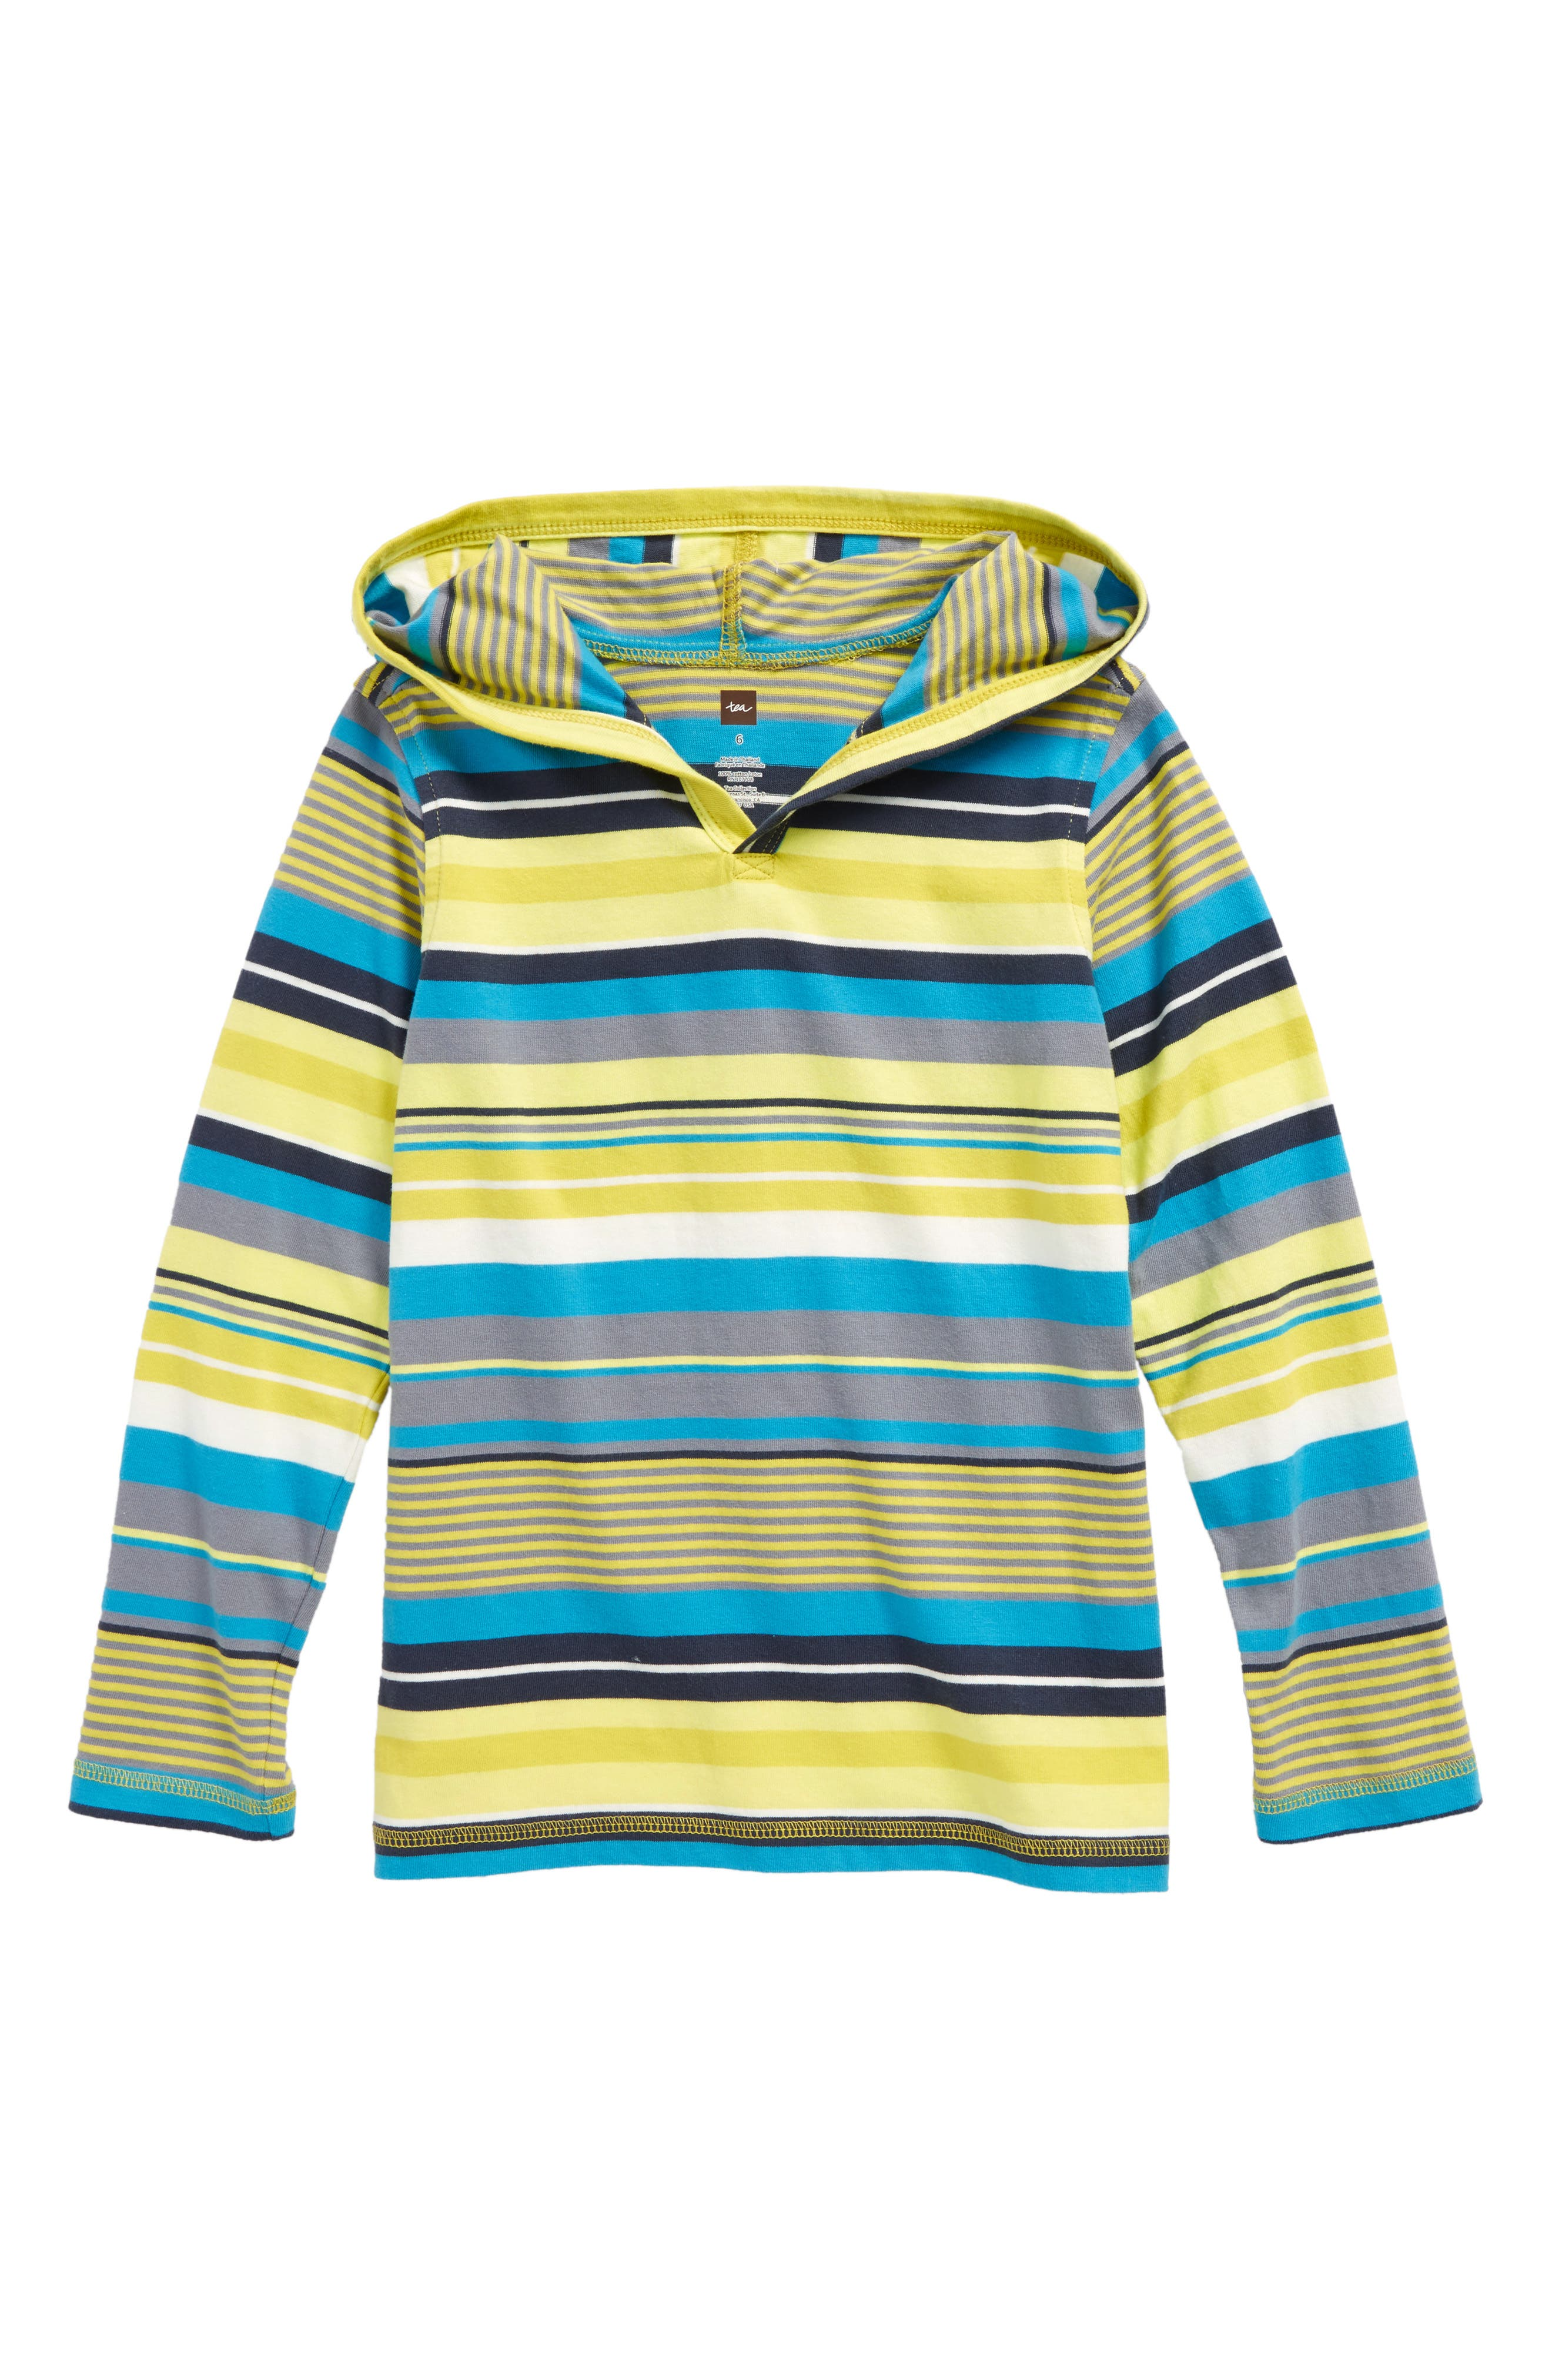 Main Image - Tea Collection Dawn Patrol - Happy Hoodie (Toddler Boys & Little Boys)